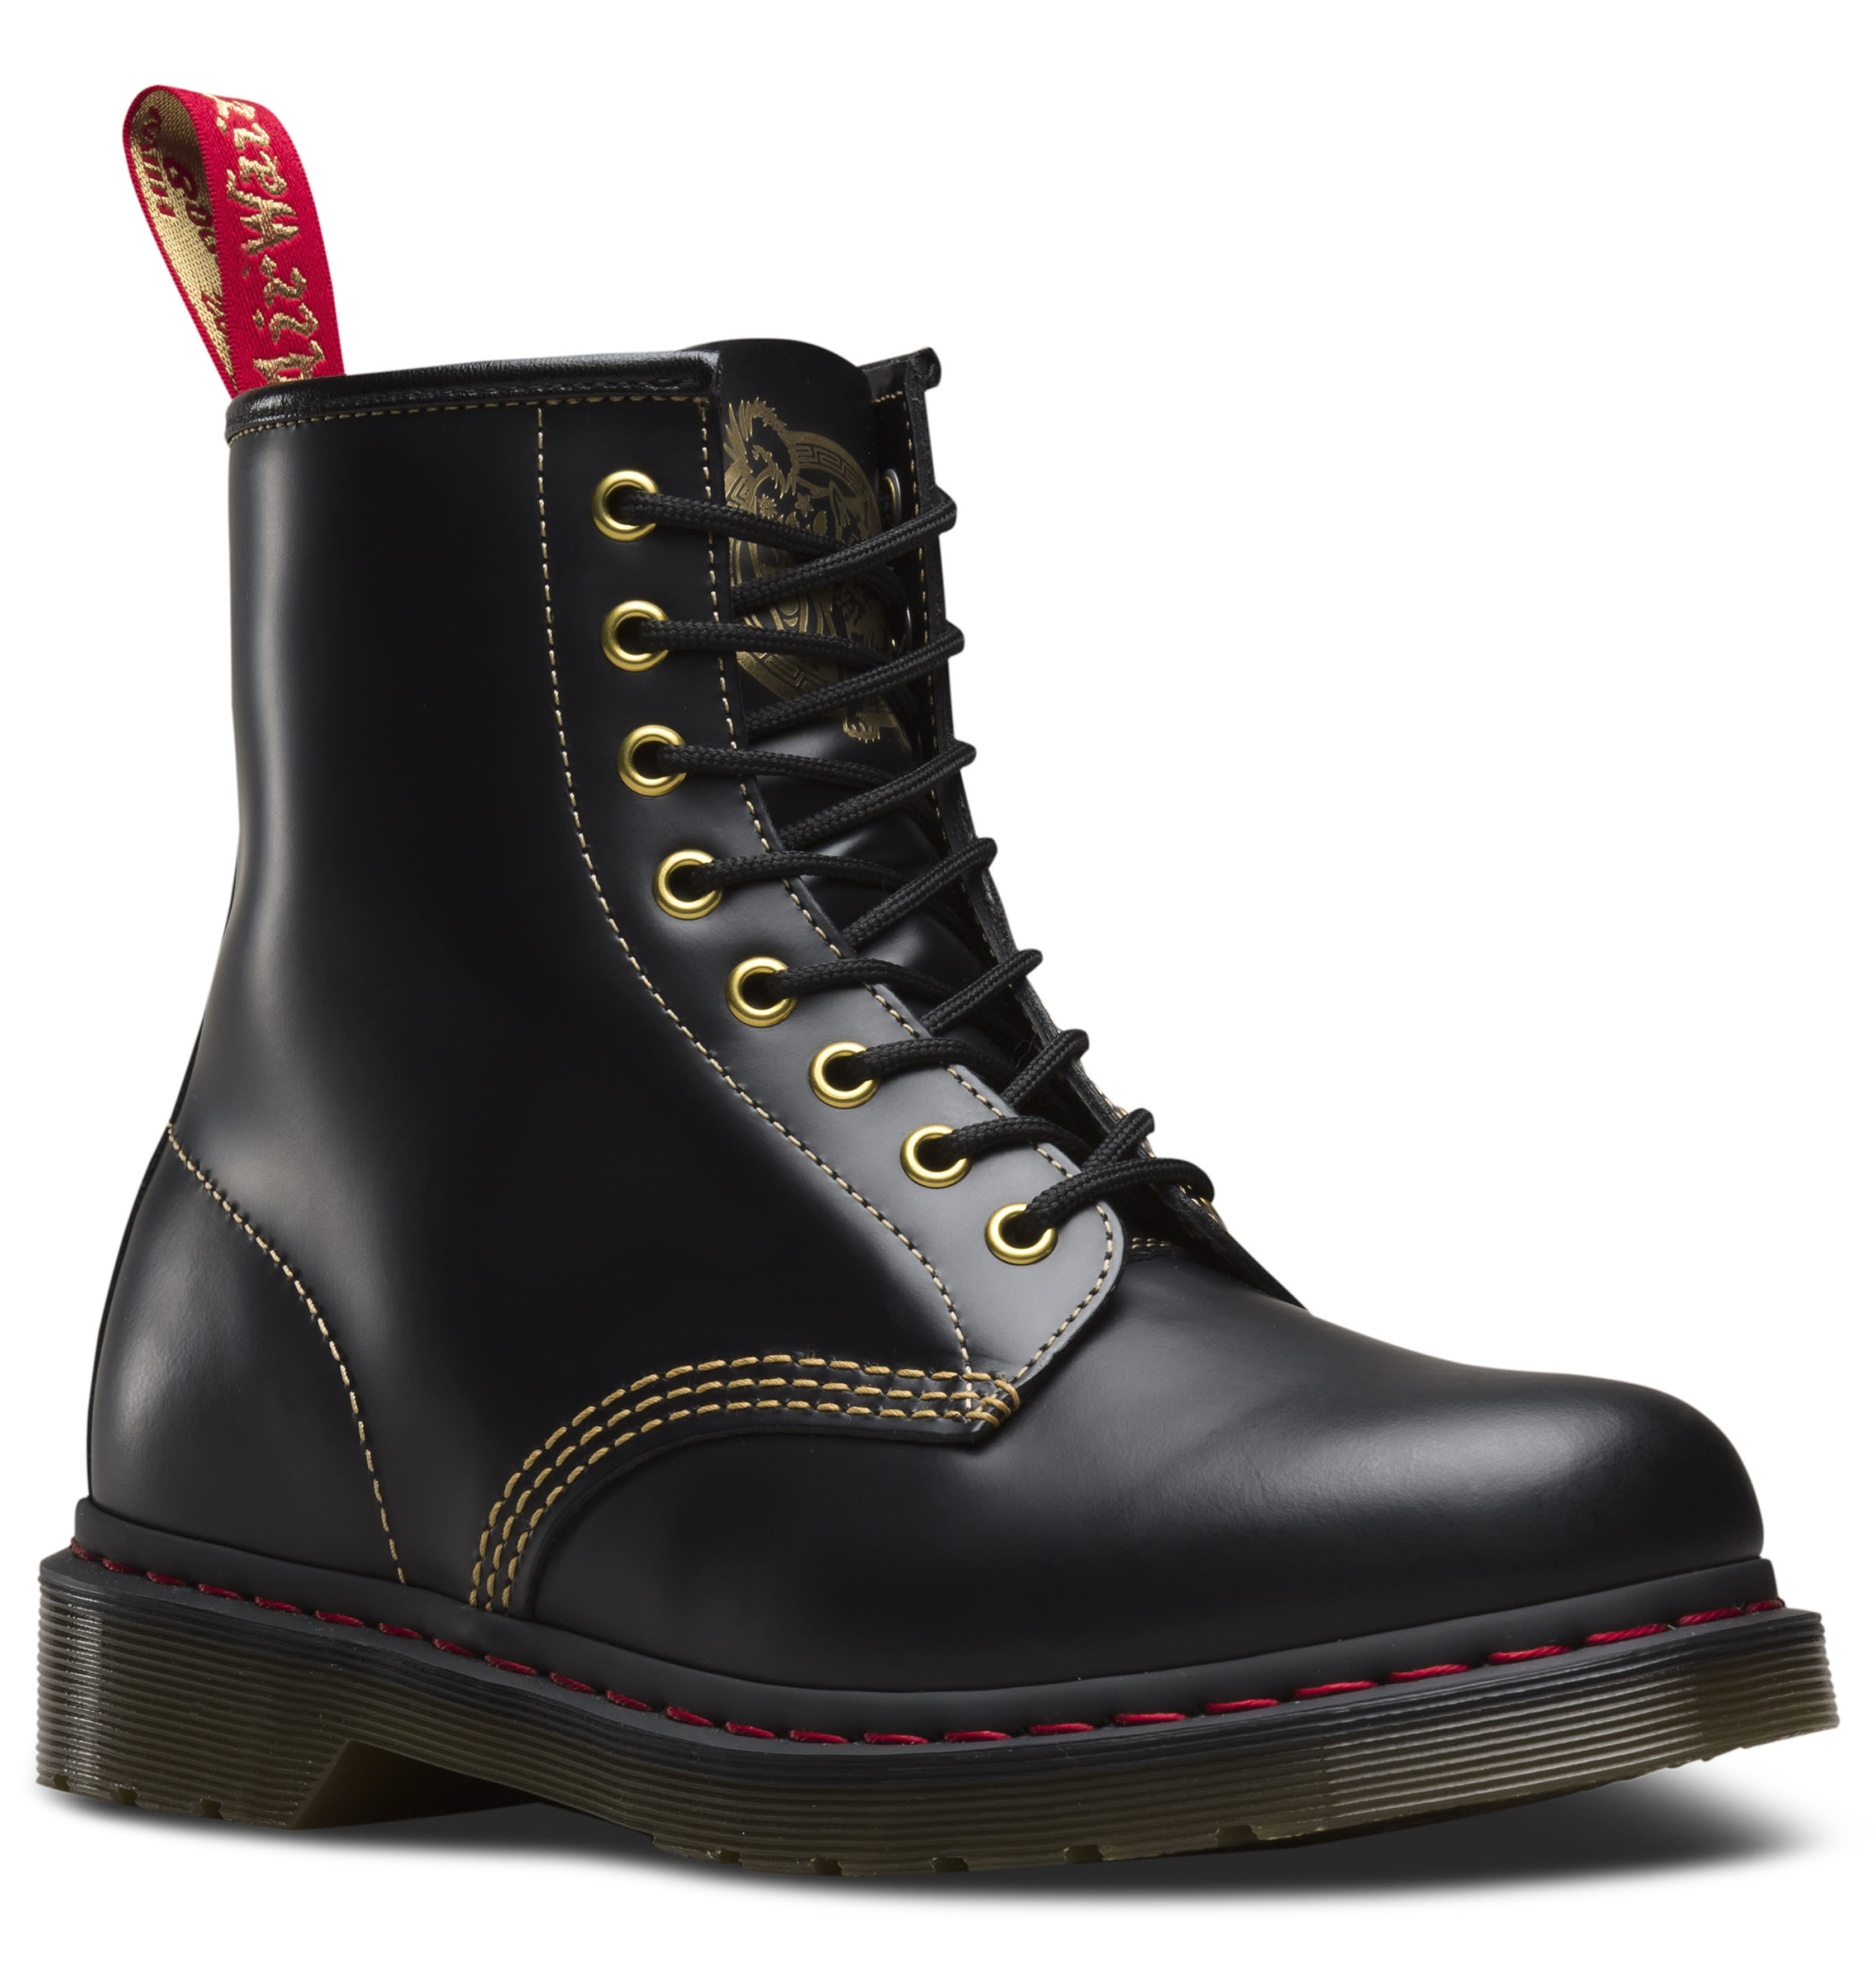 Dr Martens Commemorate Year Of The Dog With A Limited